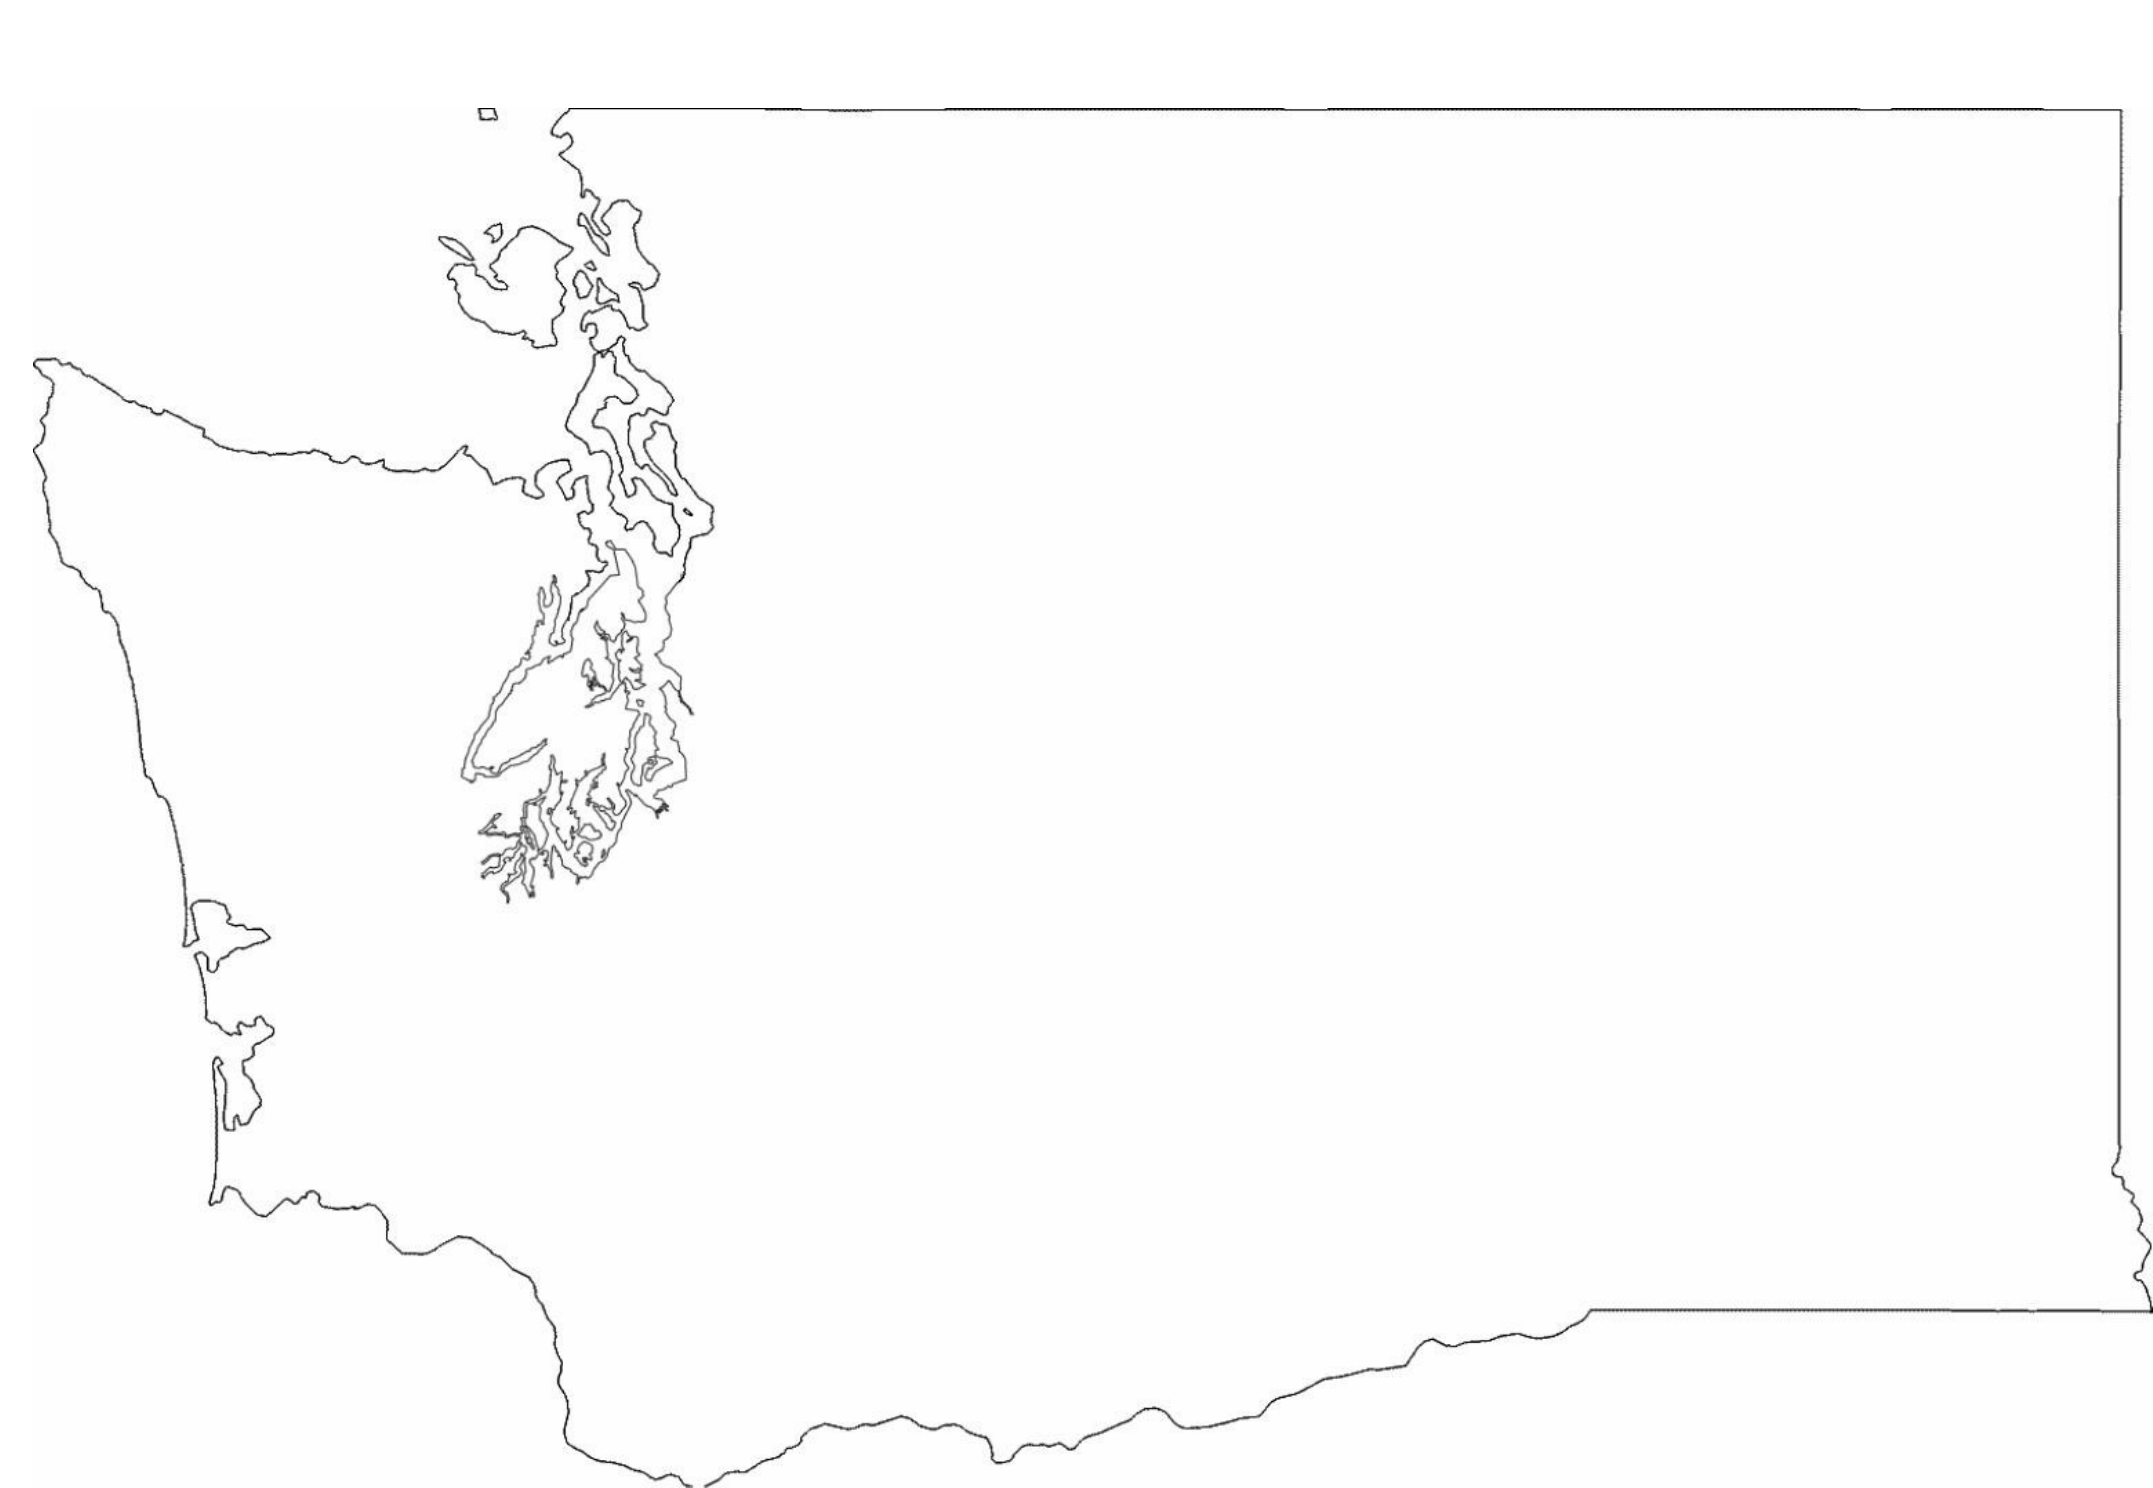 Washington State Outline Png (102+ images in Collection) Page 1.